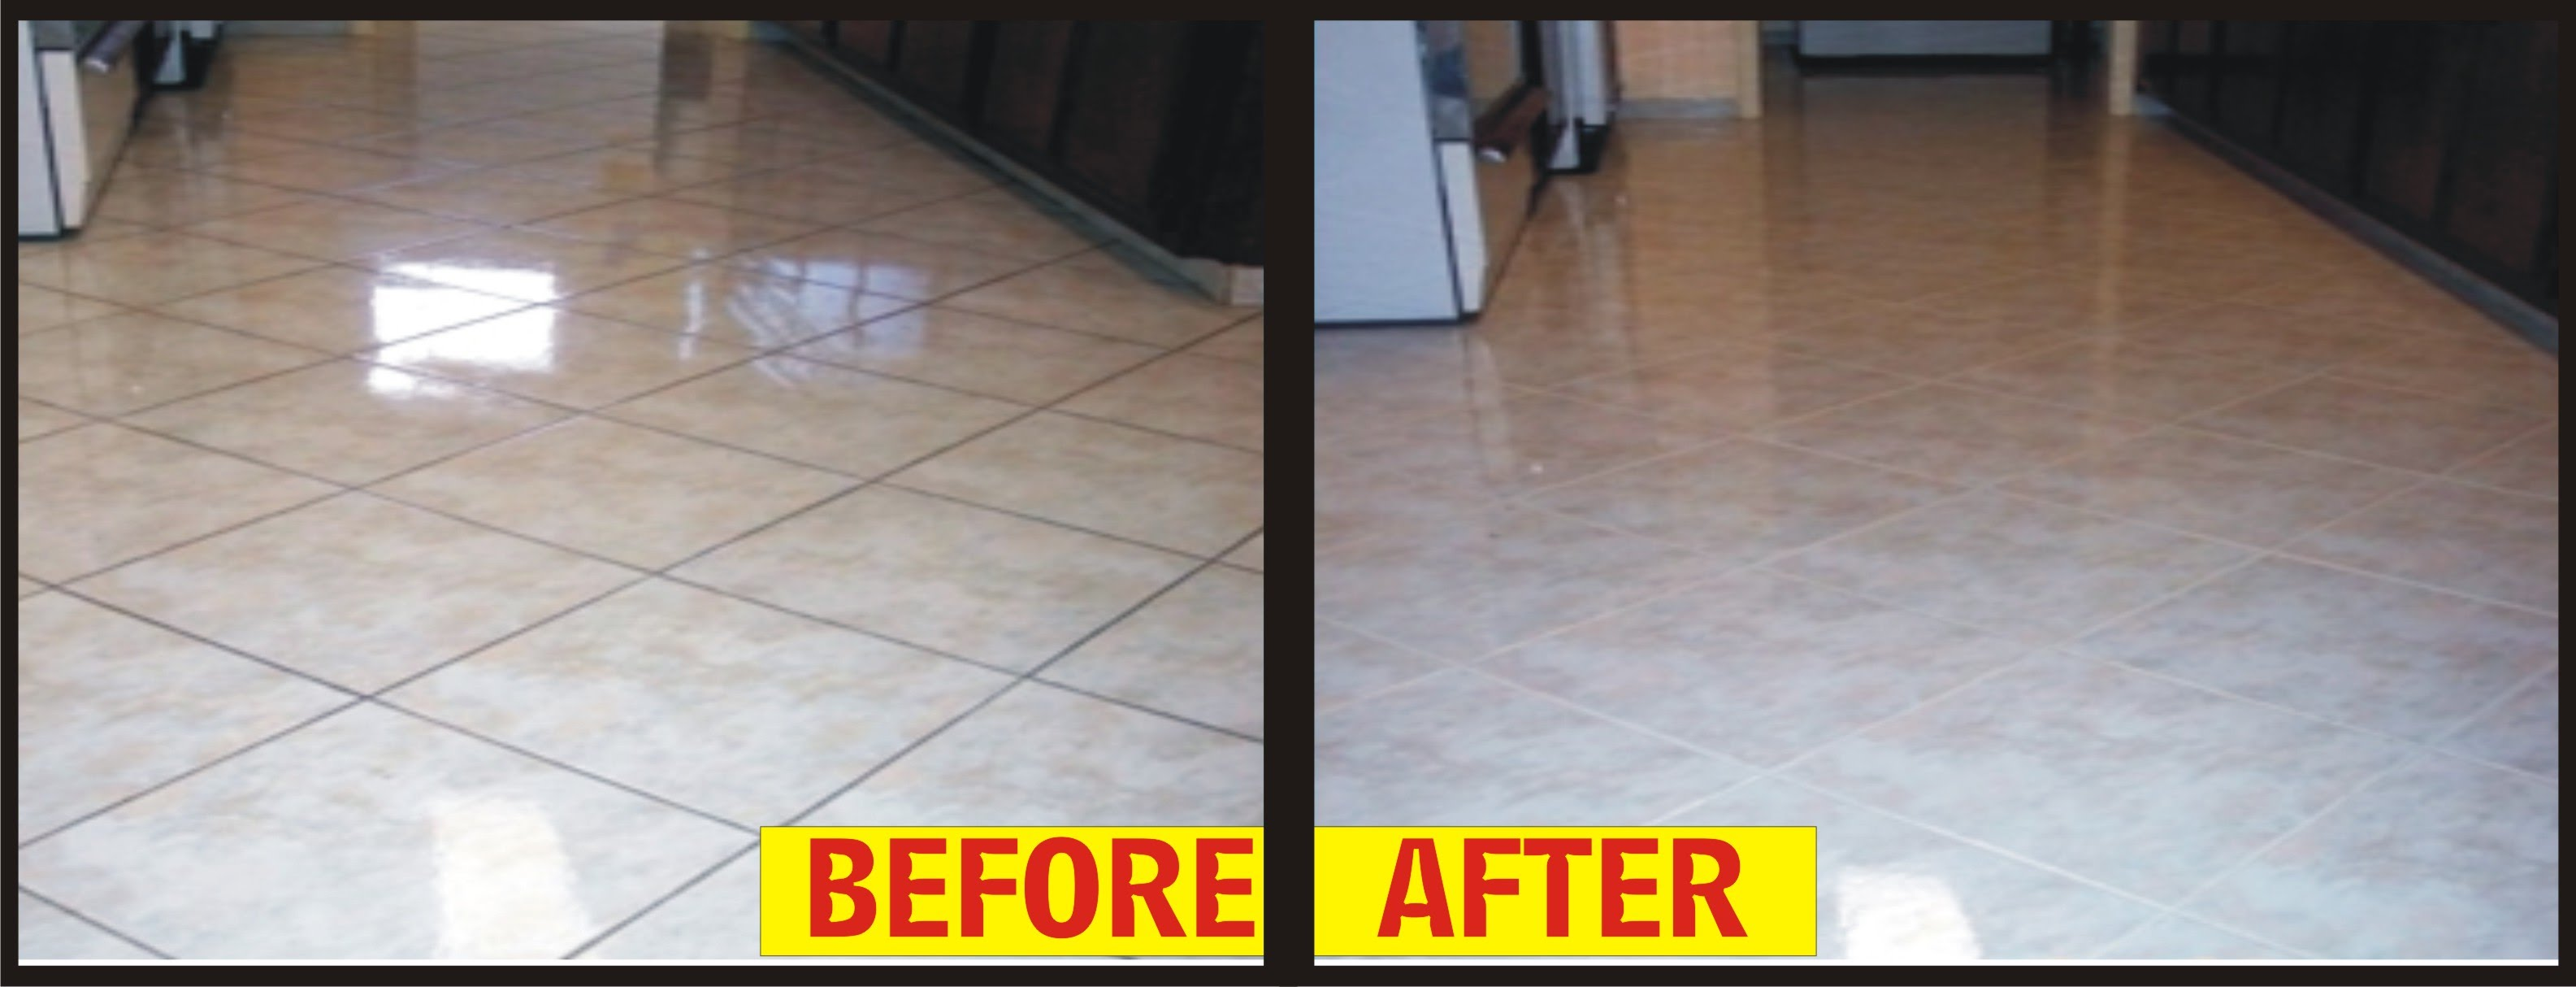 Tile Grout Cleaning Carpet Cleaner